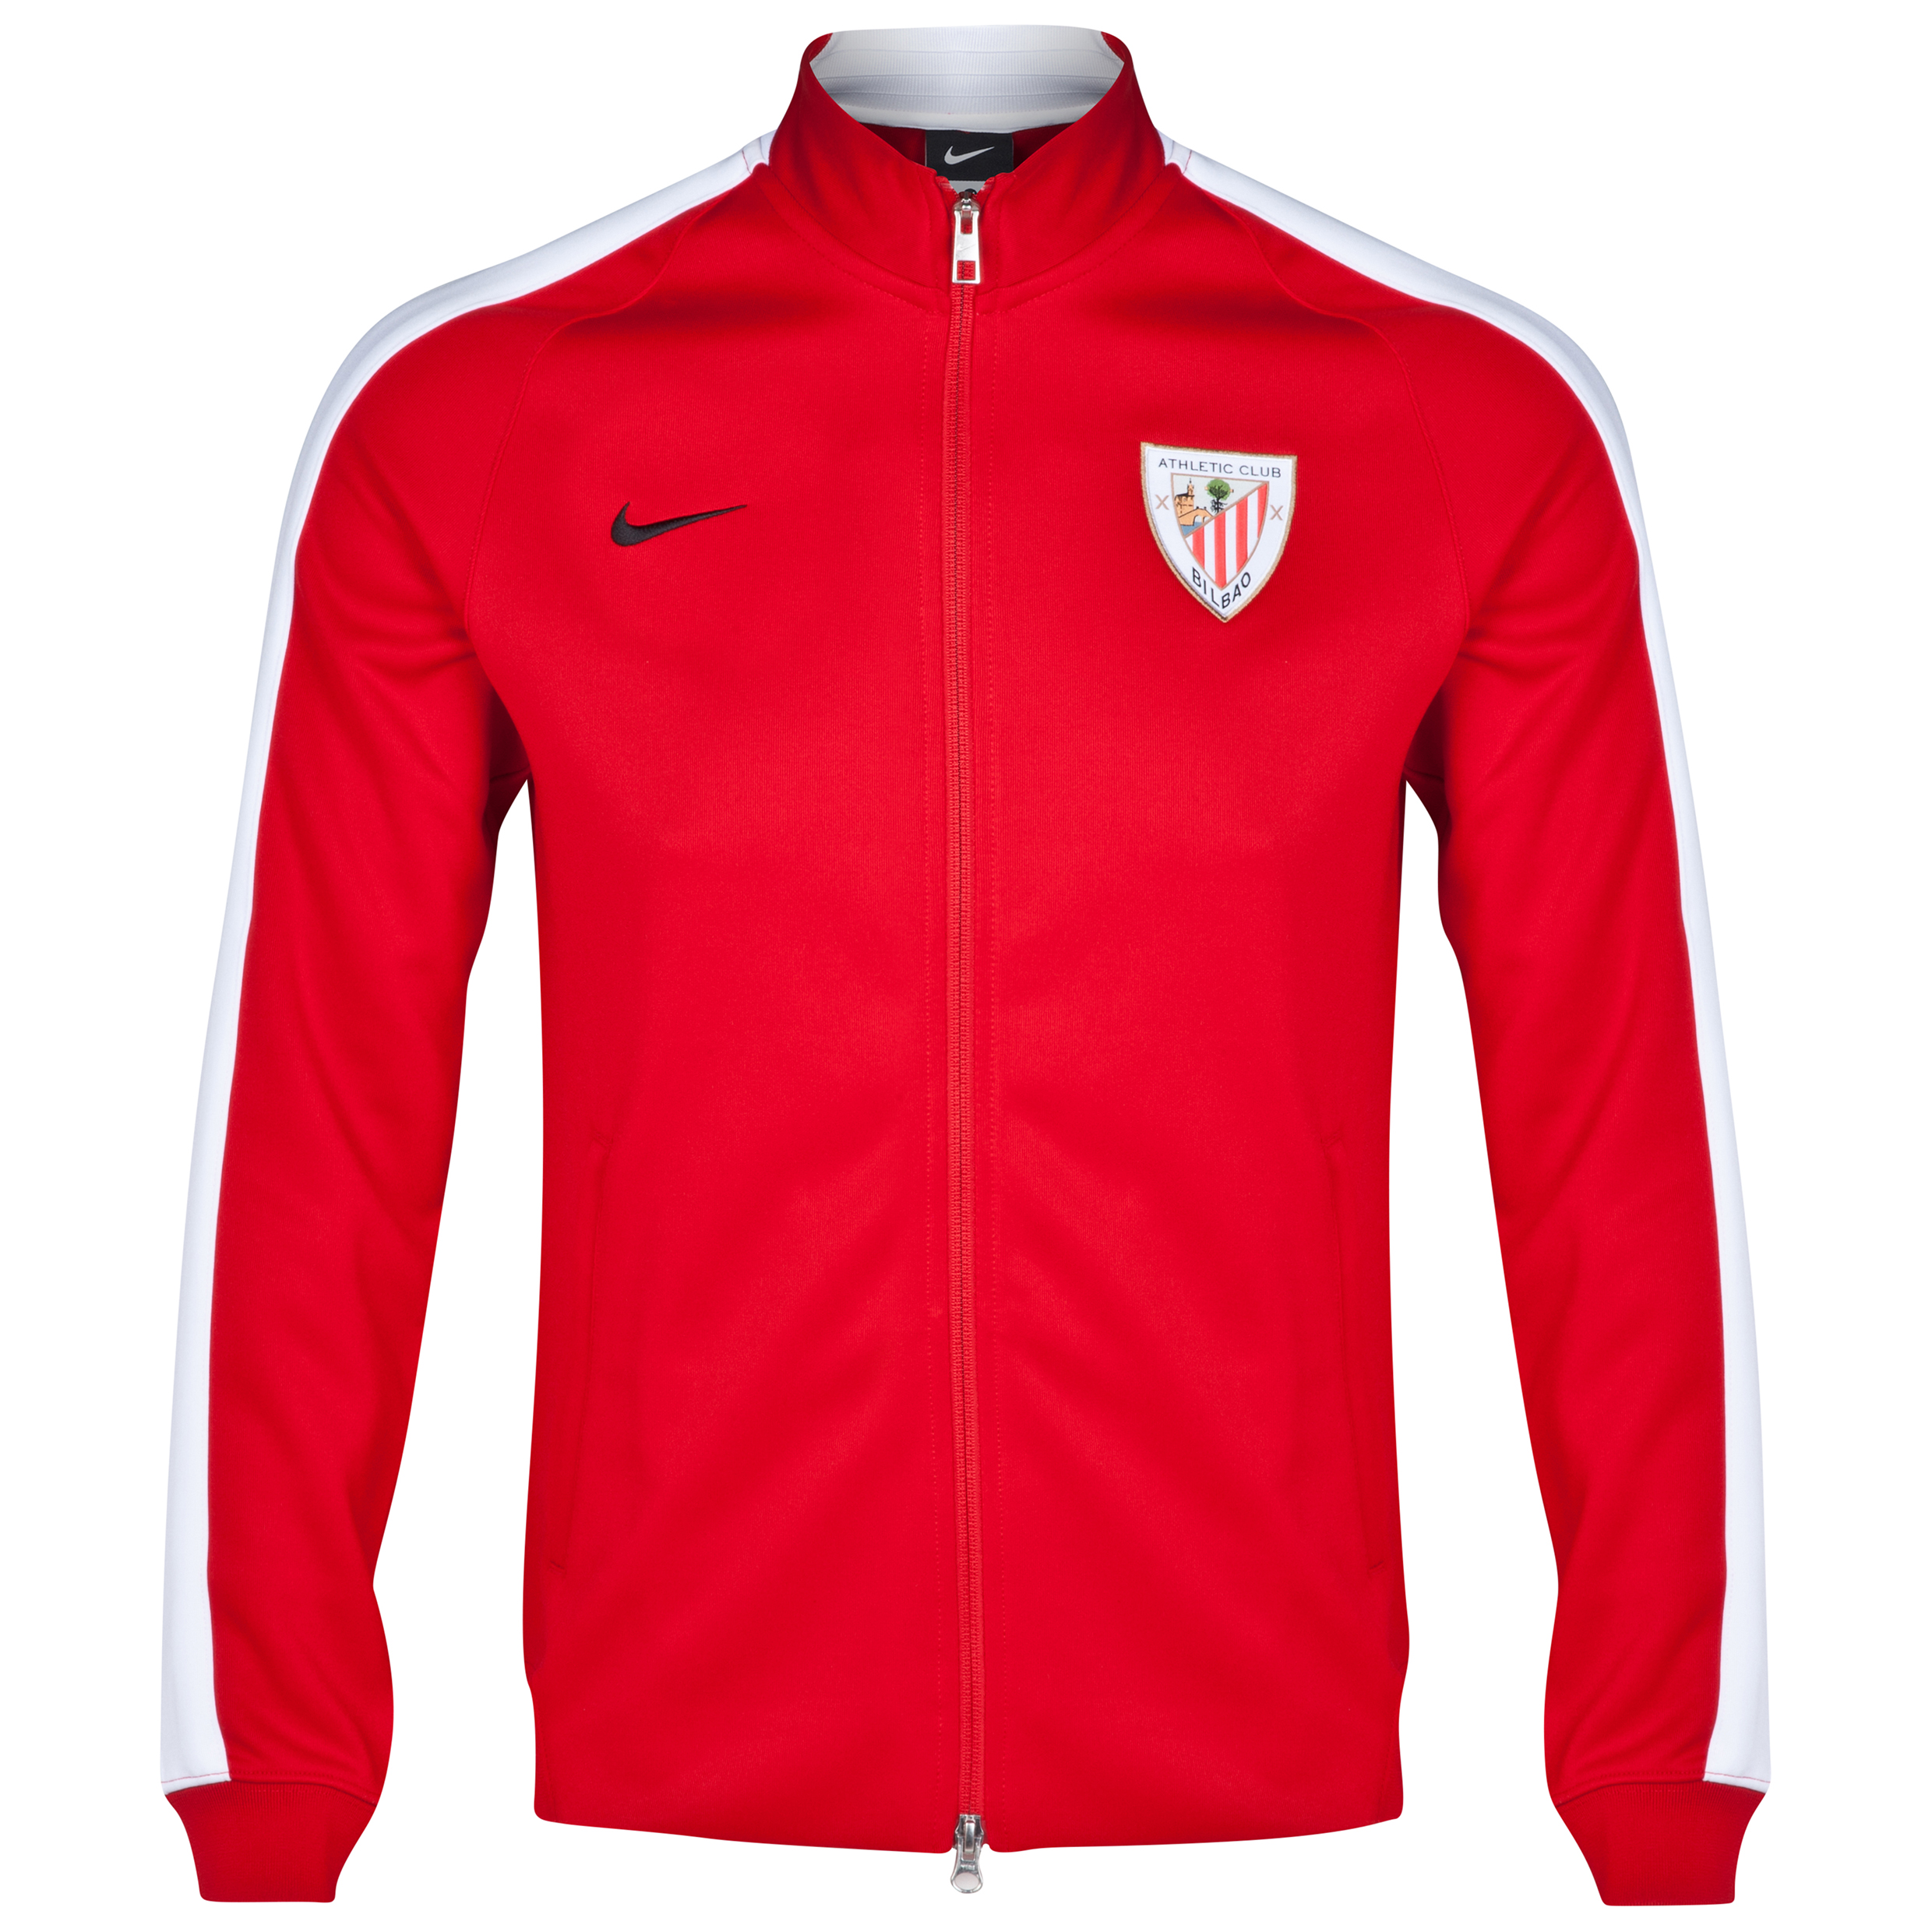 Athletico Bilbao Authentic N98 Jacket Red